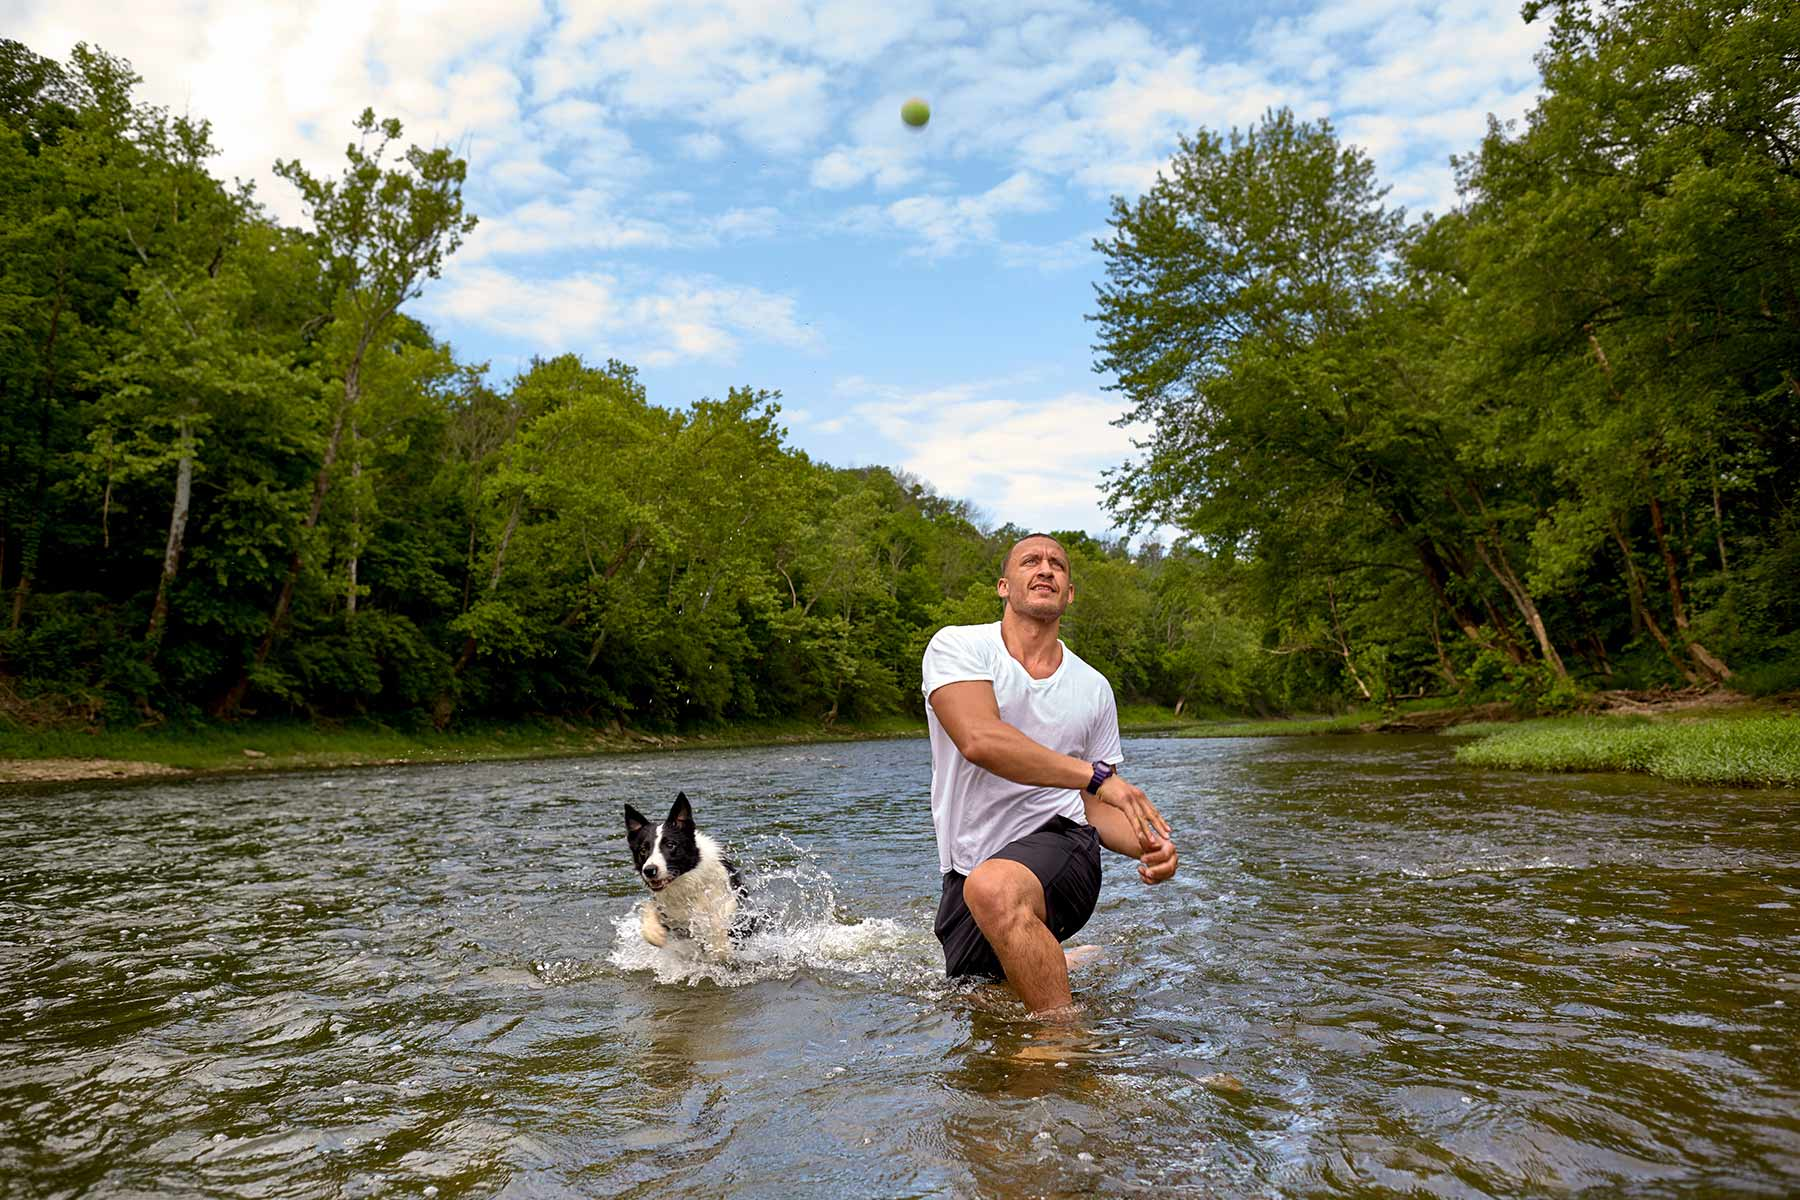 A-man-playing-fetch-with-his-dog-in-the-river